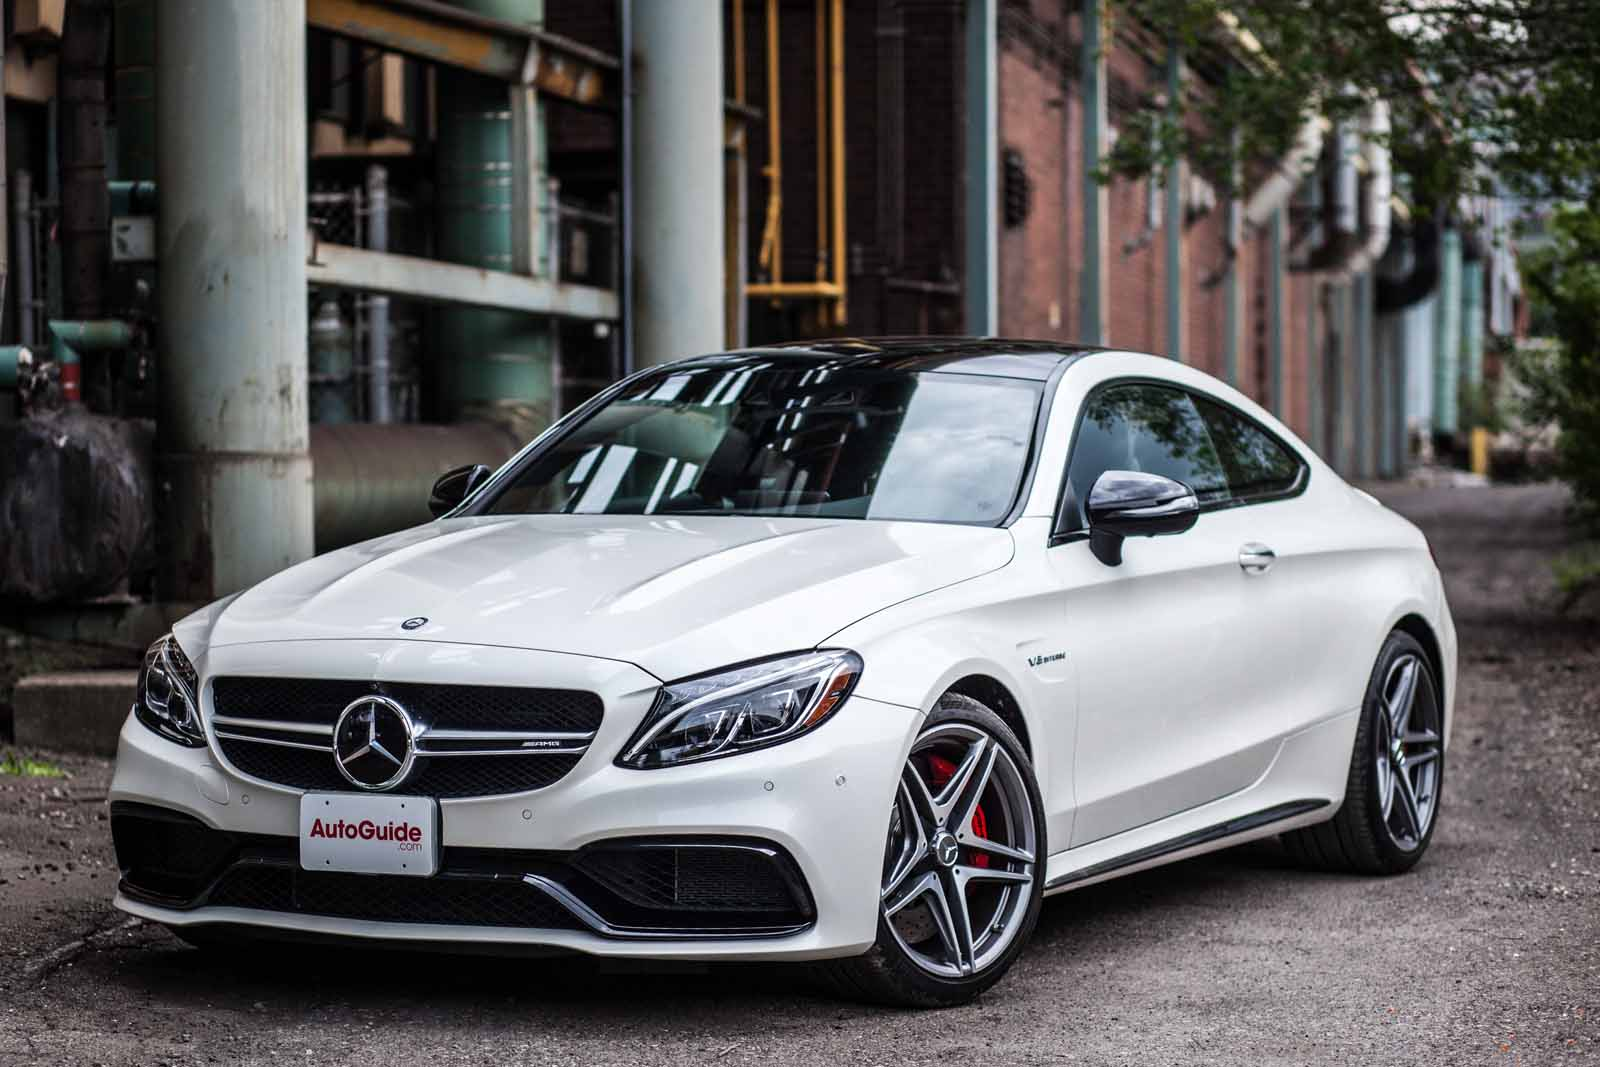 2018 Mercedes Amg C63s Coupe Best New Cars For 2018